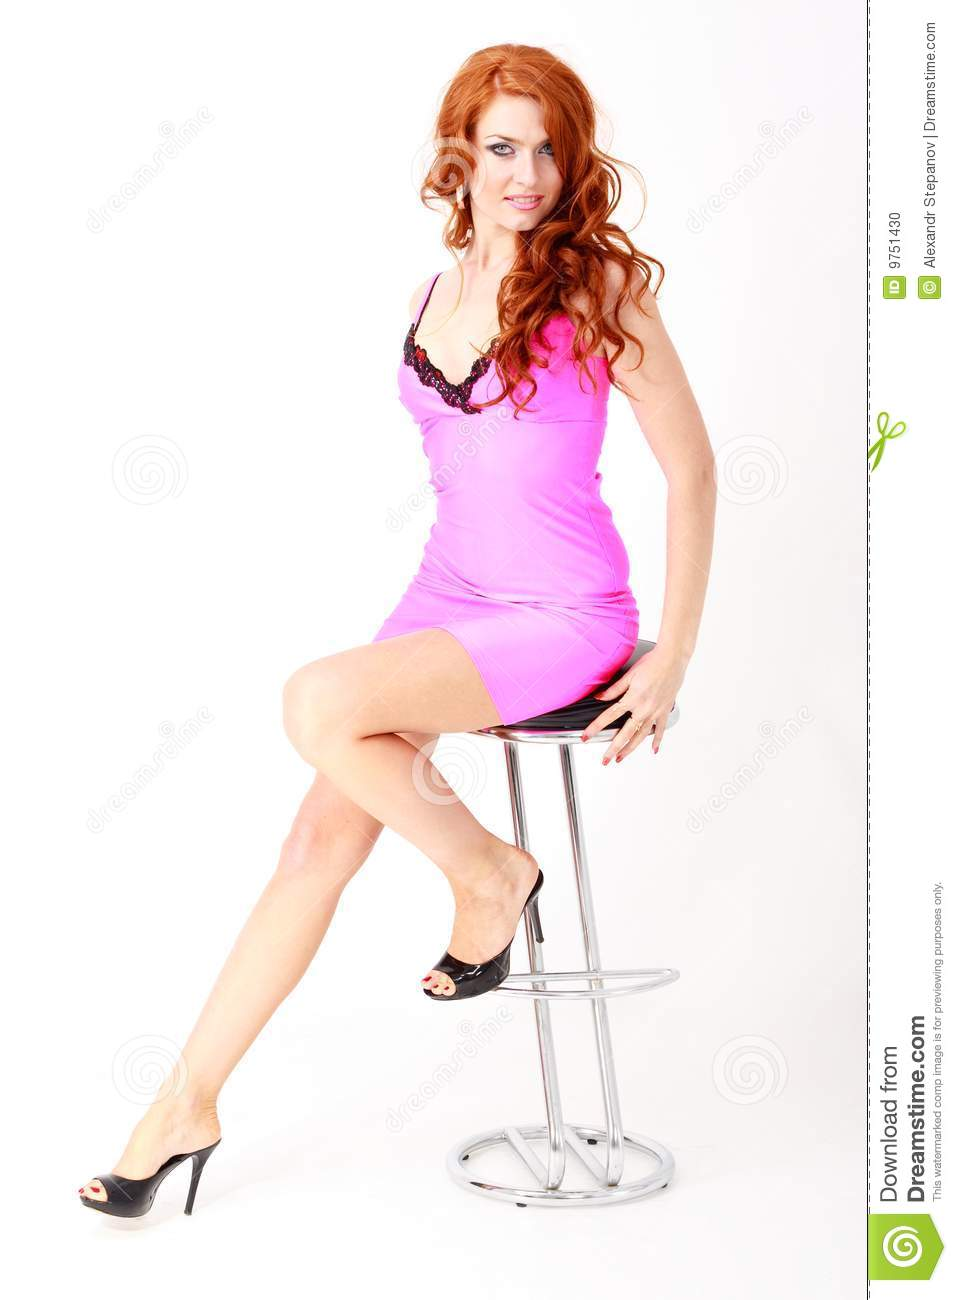 Woman In Little Pink Dress Sitting On Chair Stock Photo - Image ...